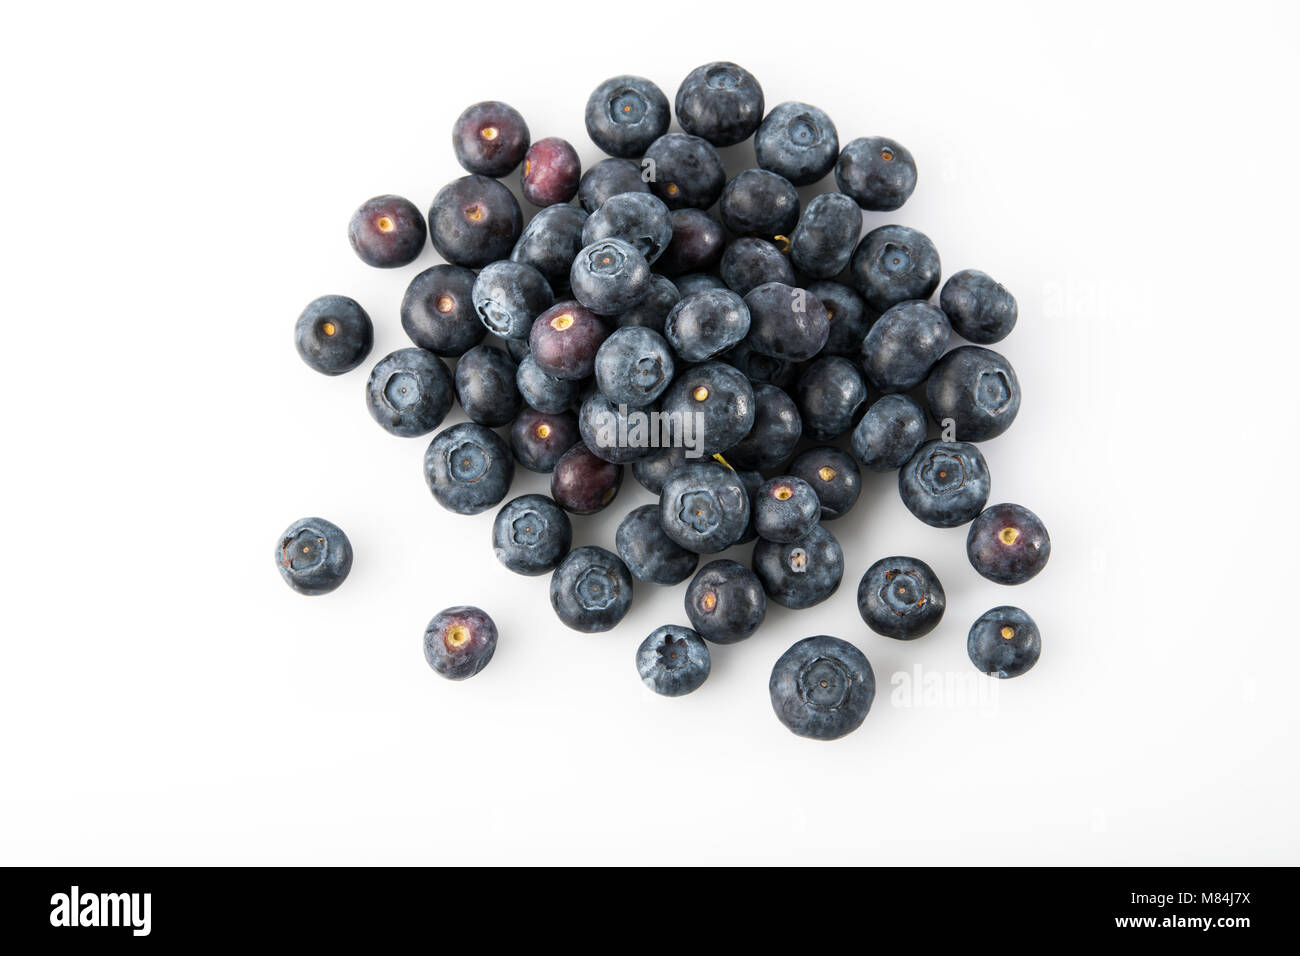 Fruit: Top View of Fresh Blueberries Isolated on White Background - Stock Image